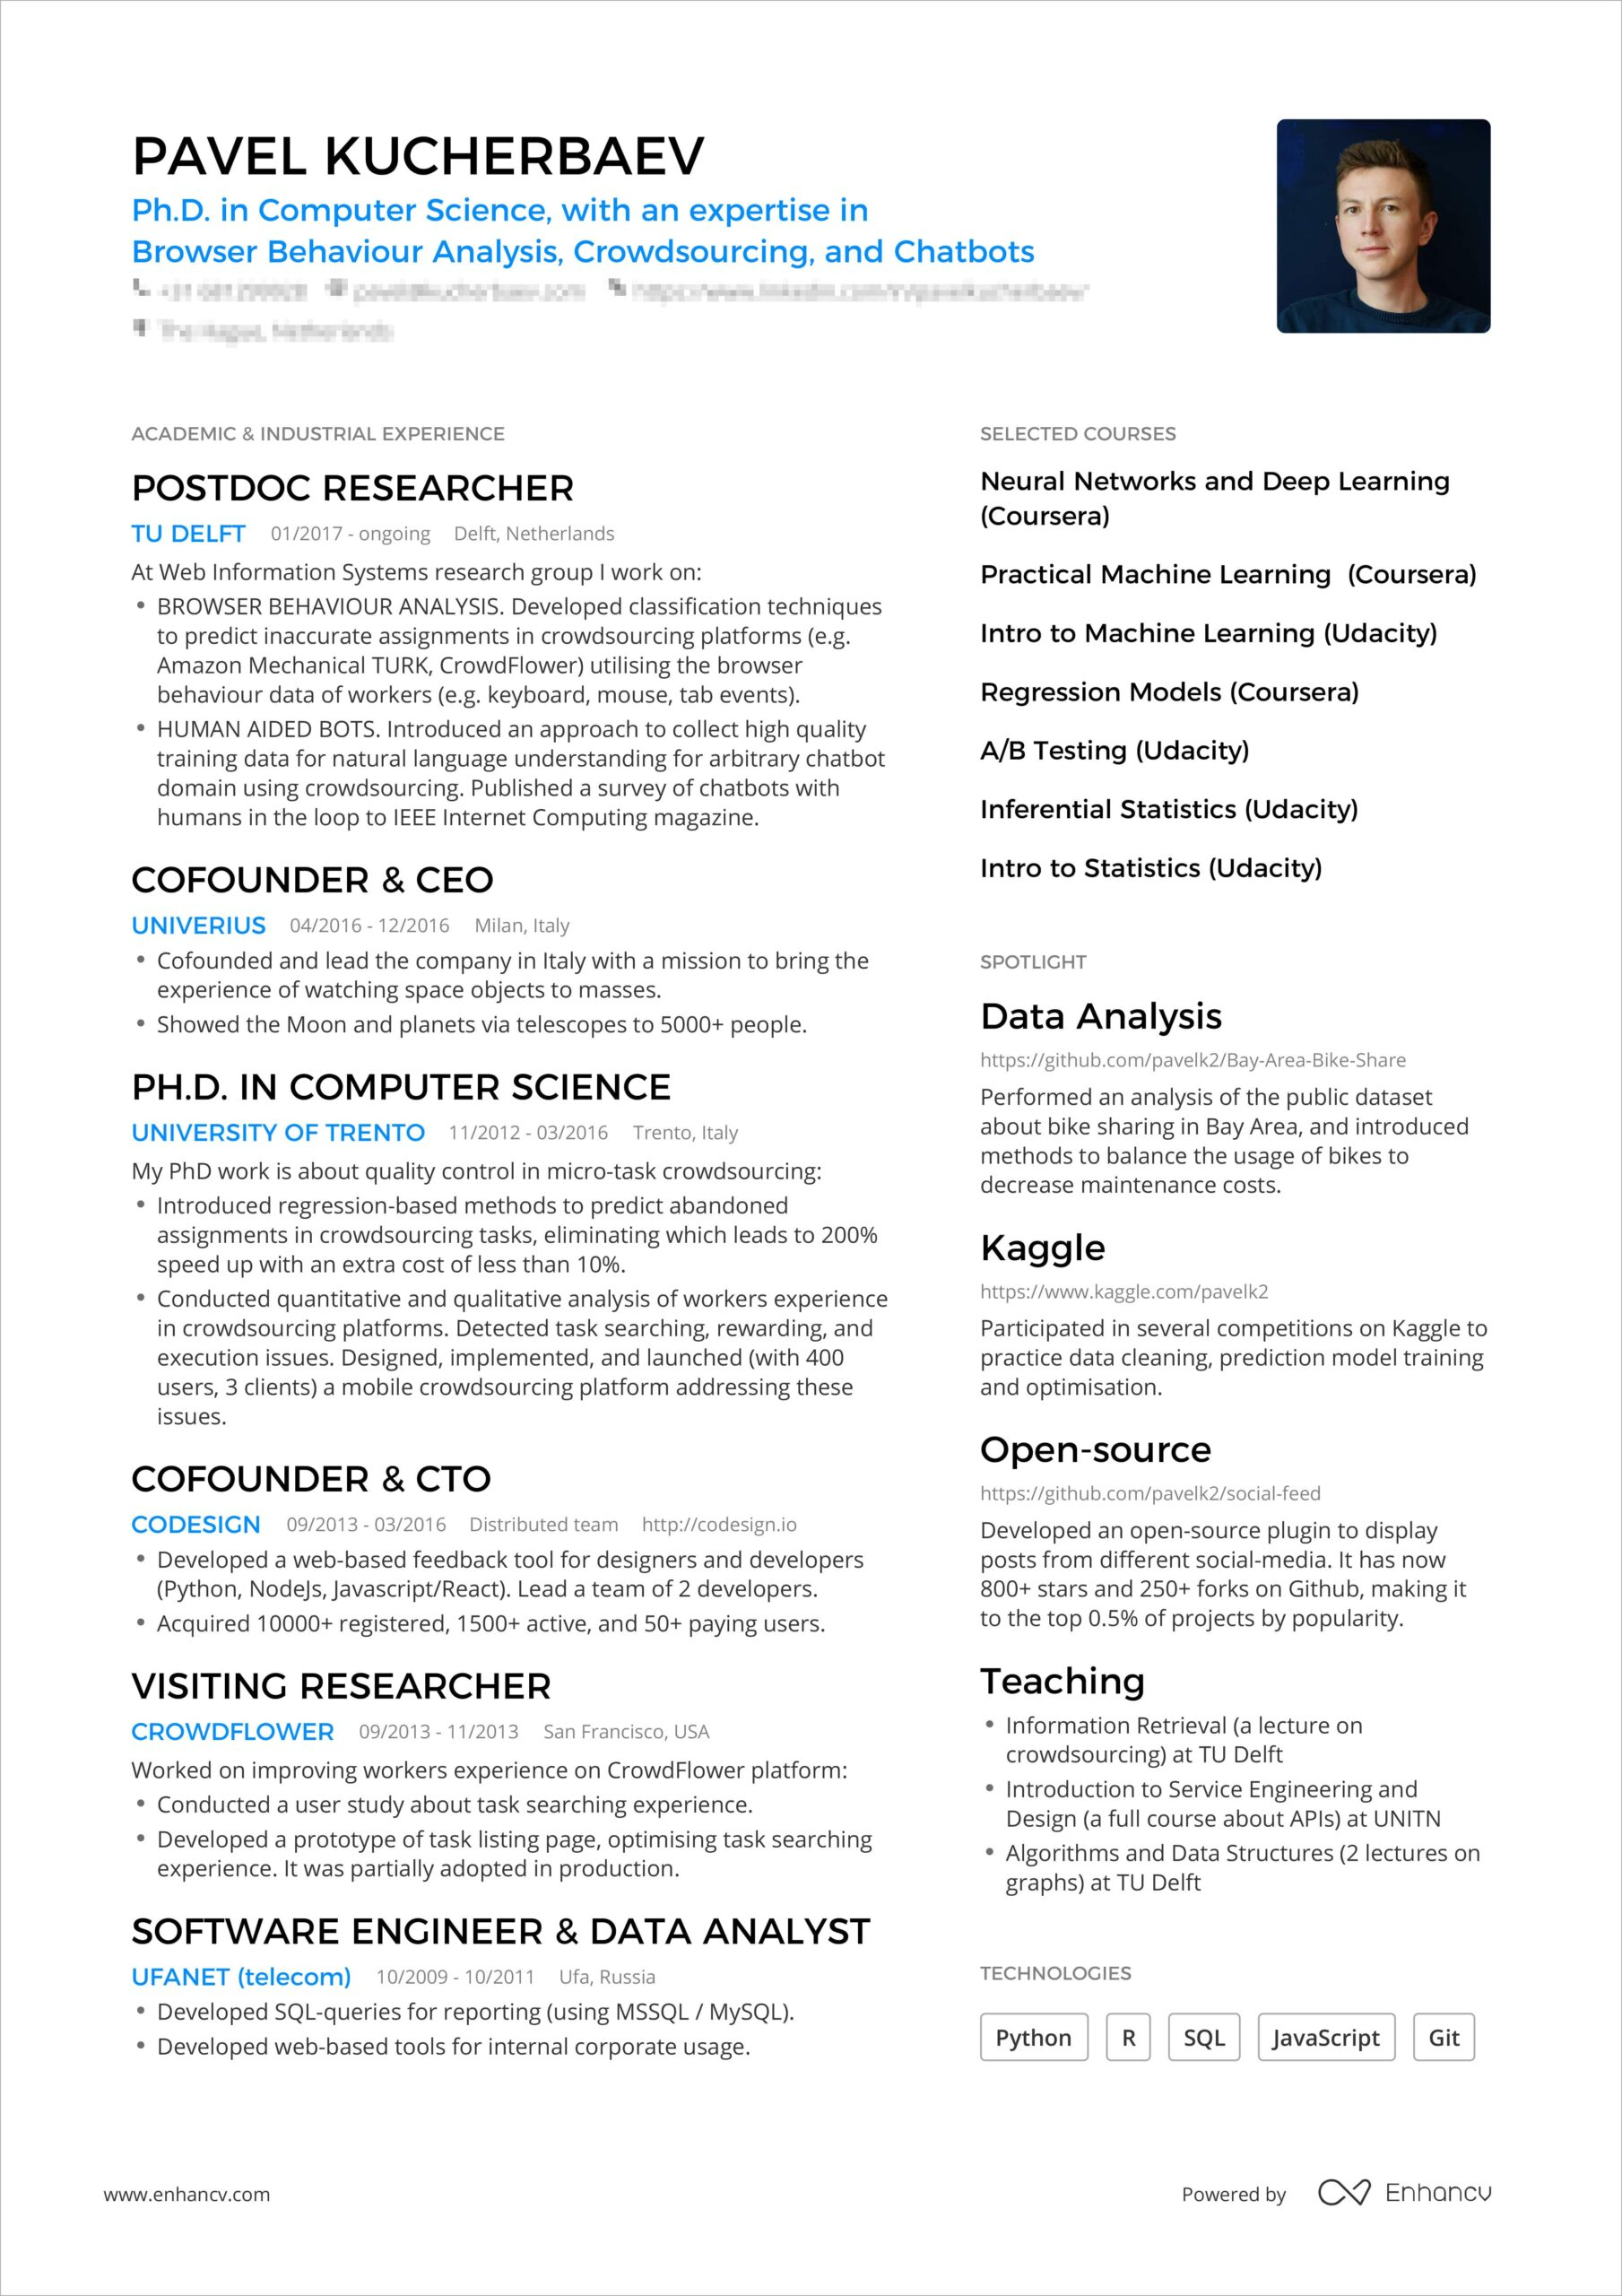 powerful one resume examples you can use now vs two pavel booking bordered min expert Resume One Page Resume Vs Two Page